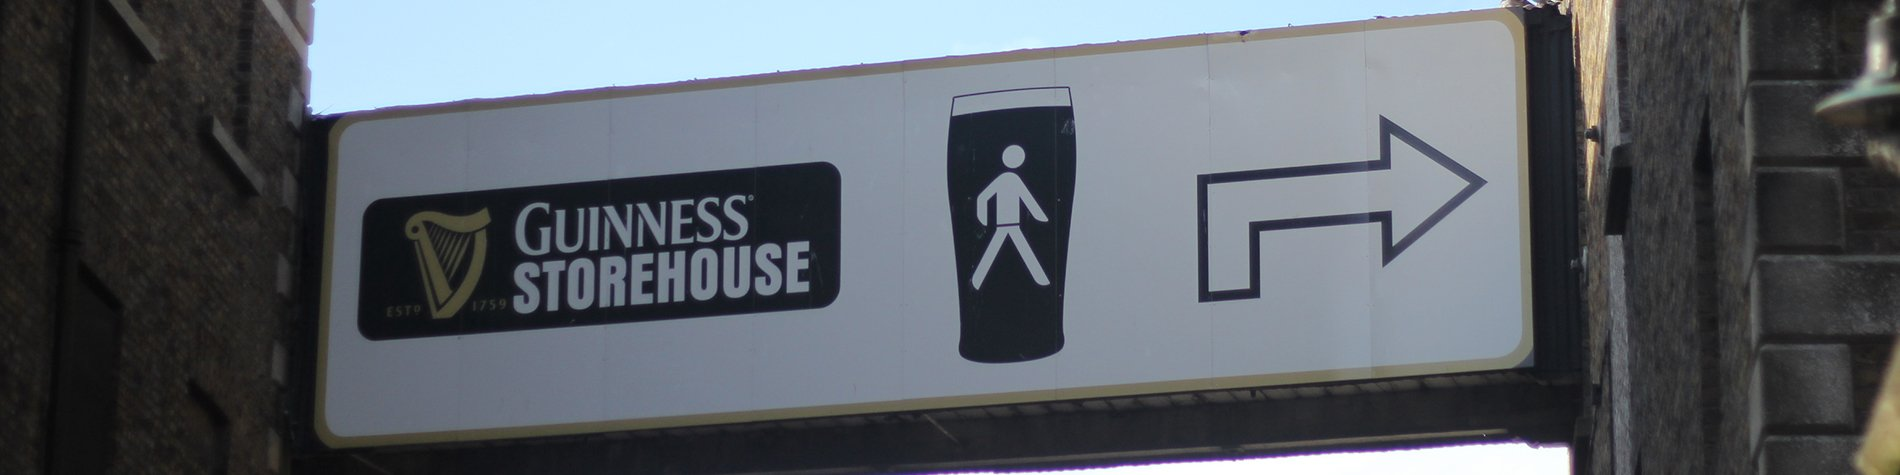 Sign of Guinness Storehouse in Ireland with an arrow towards the entrance